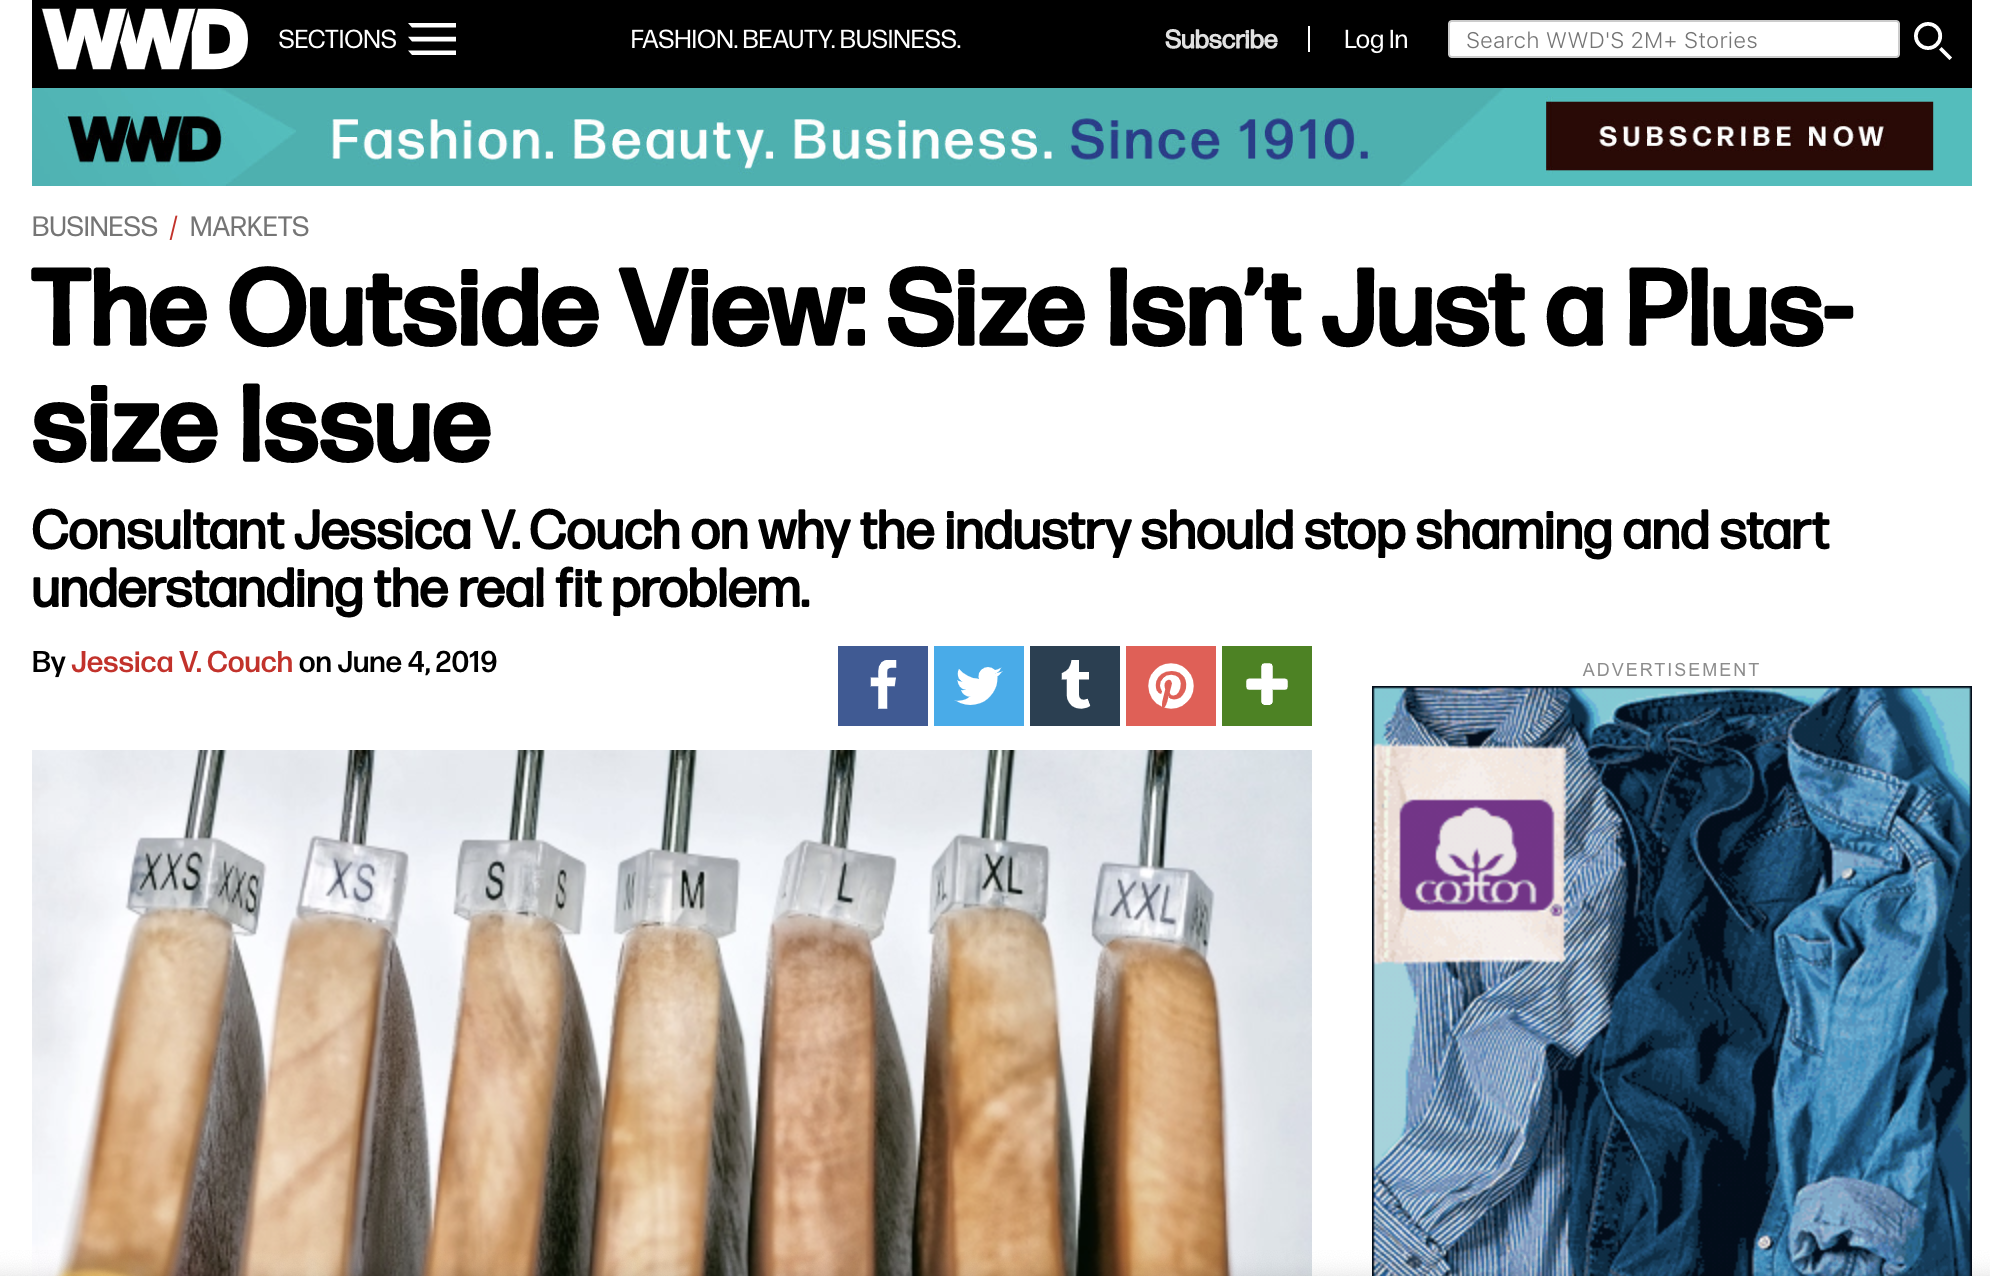 WWD: Size Article - Jessica Couch's article on size and the sizing issue.